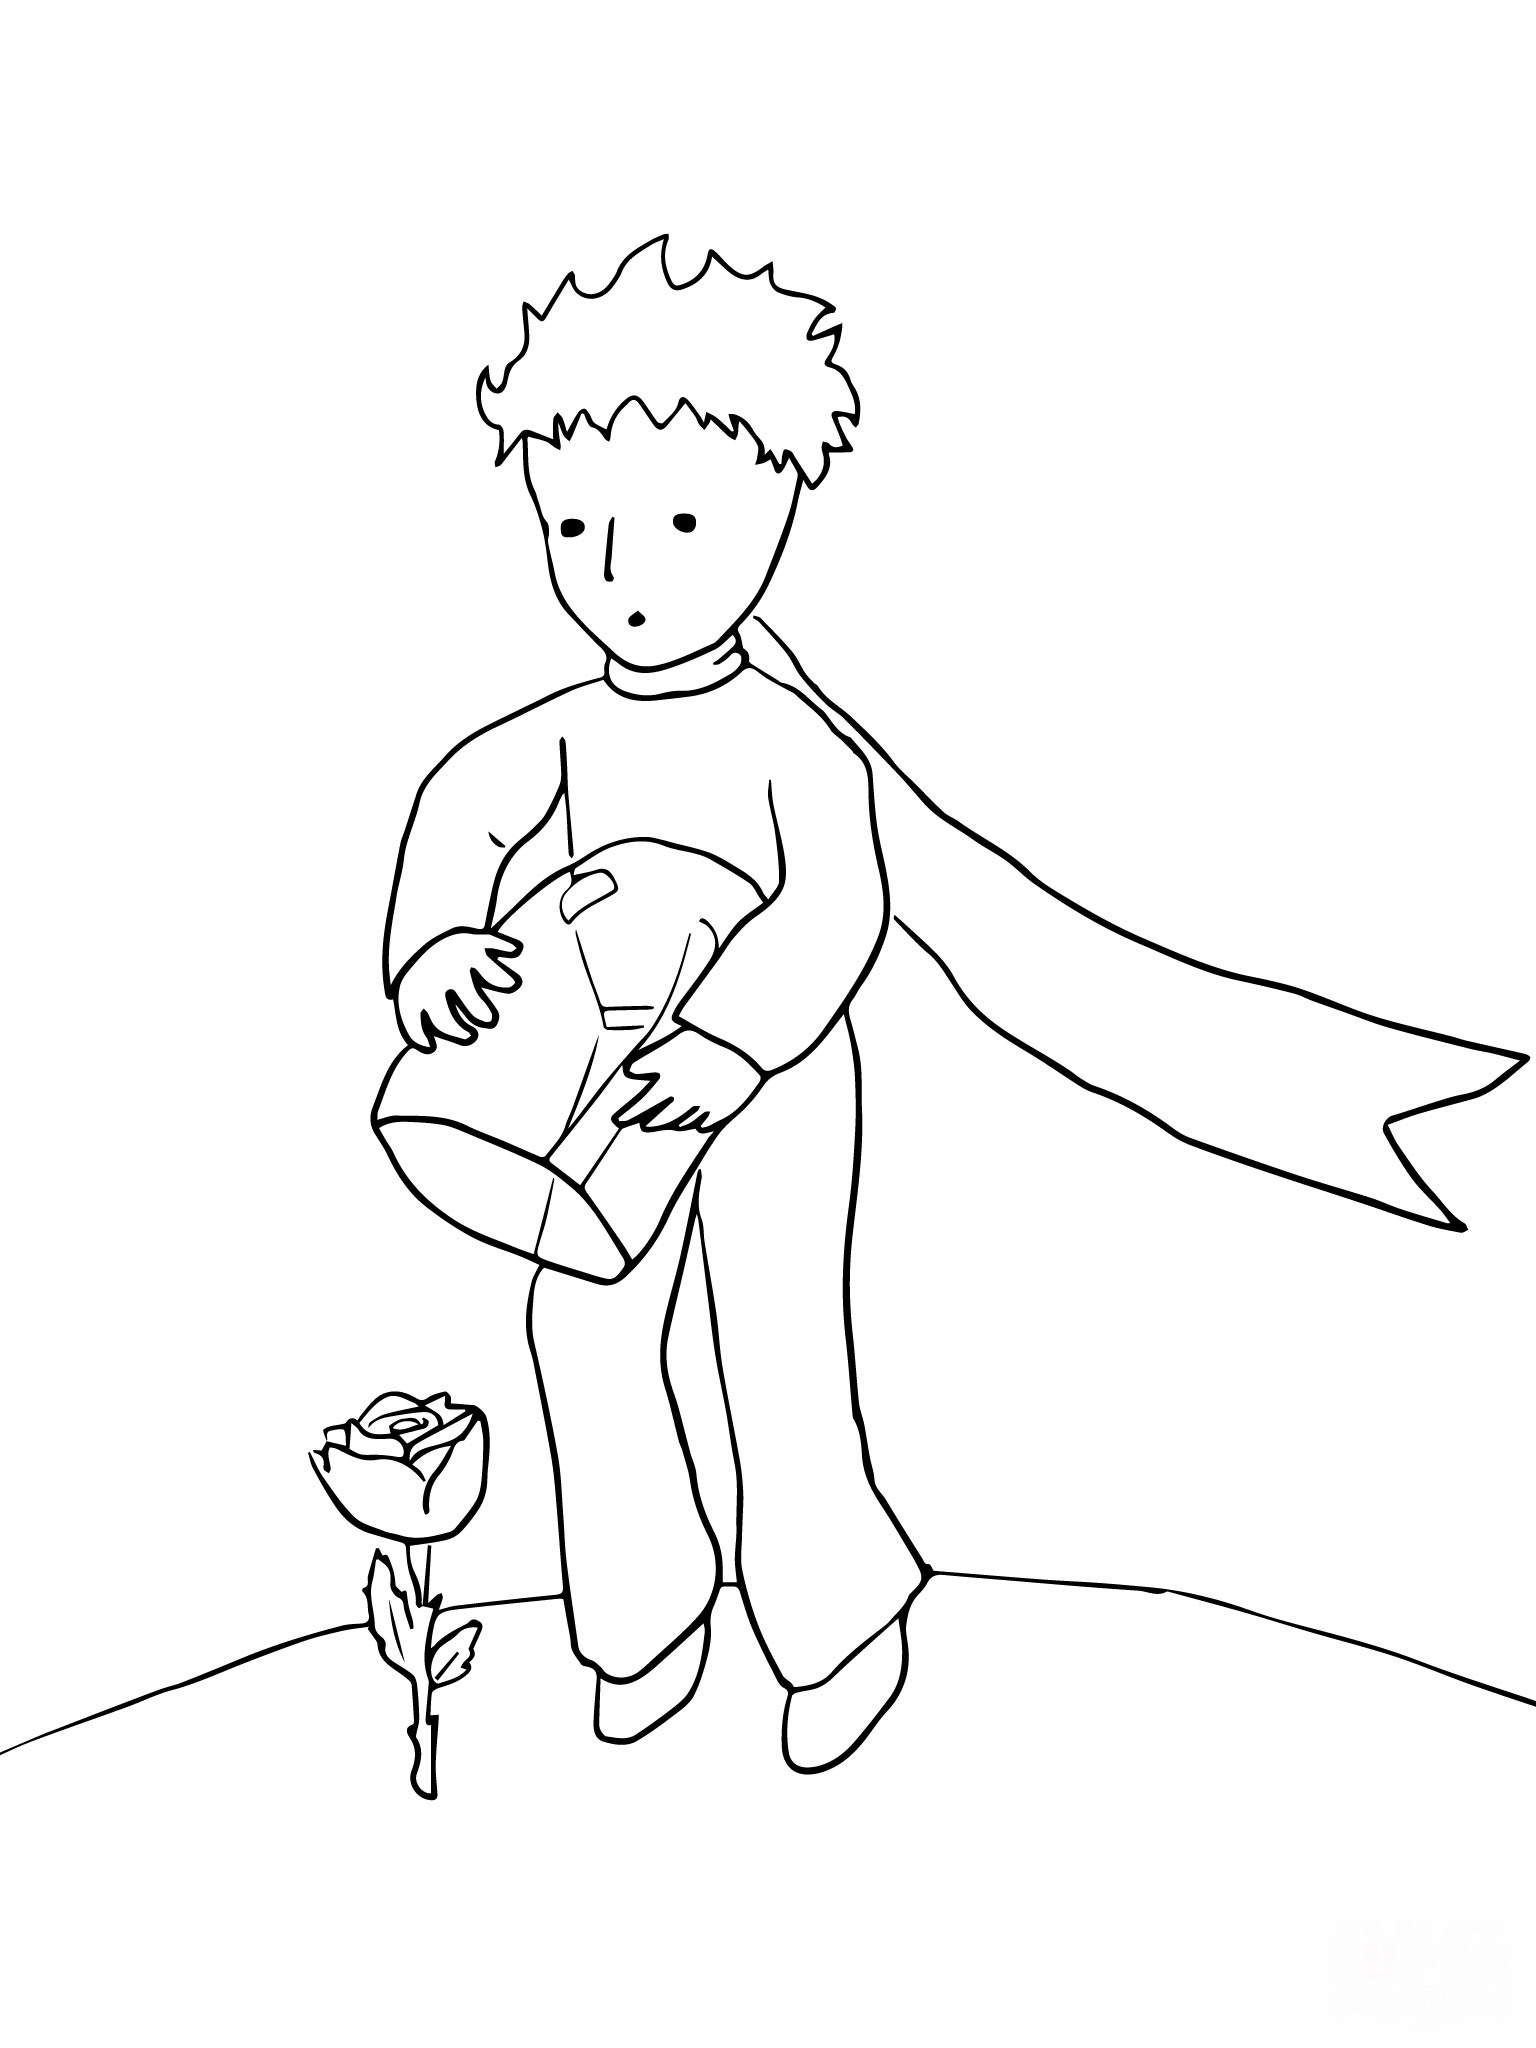 the little prince coloring pages kids n funcom 9 coloring pages of the little prince coloring the pages prince little